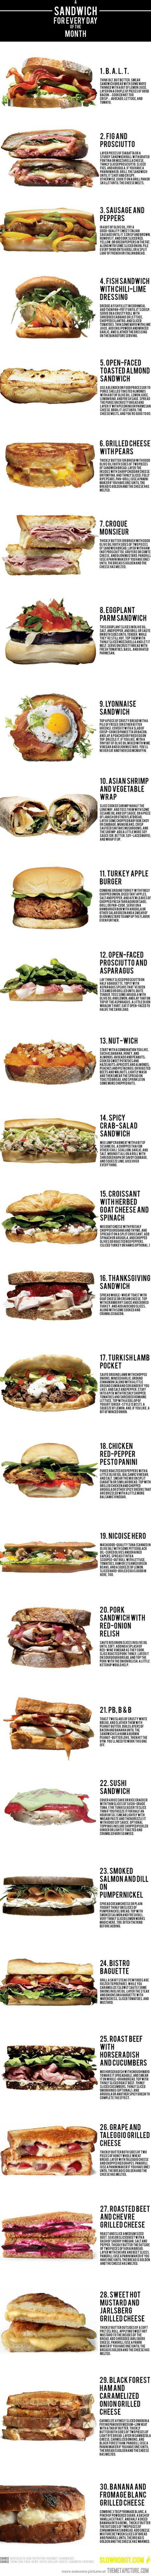 A sandwich for every day of the month.  ~~~> A lot of these sound like a PITA, but the ones that are doable may be heaven.